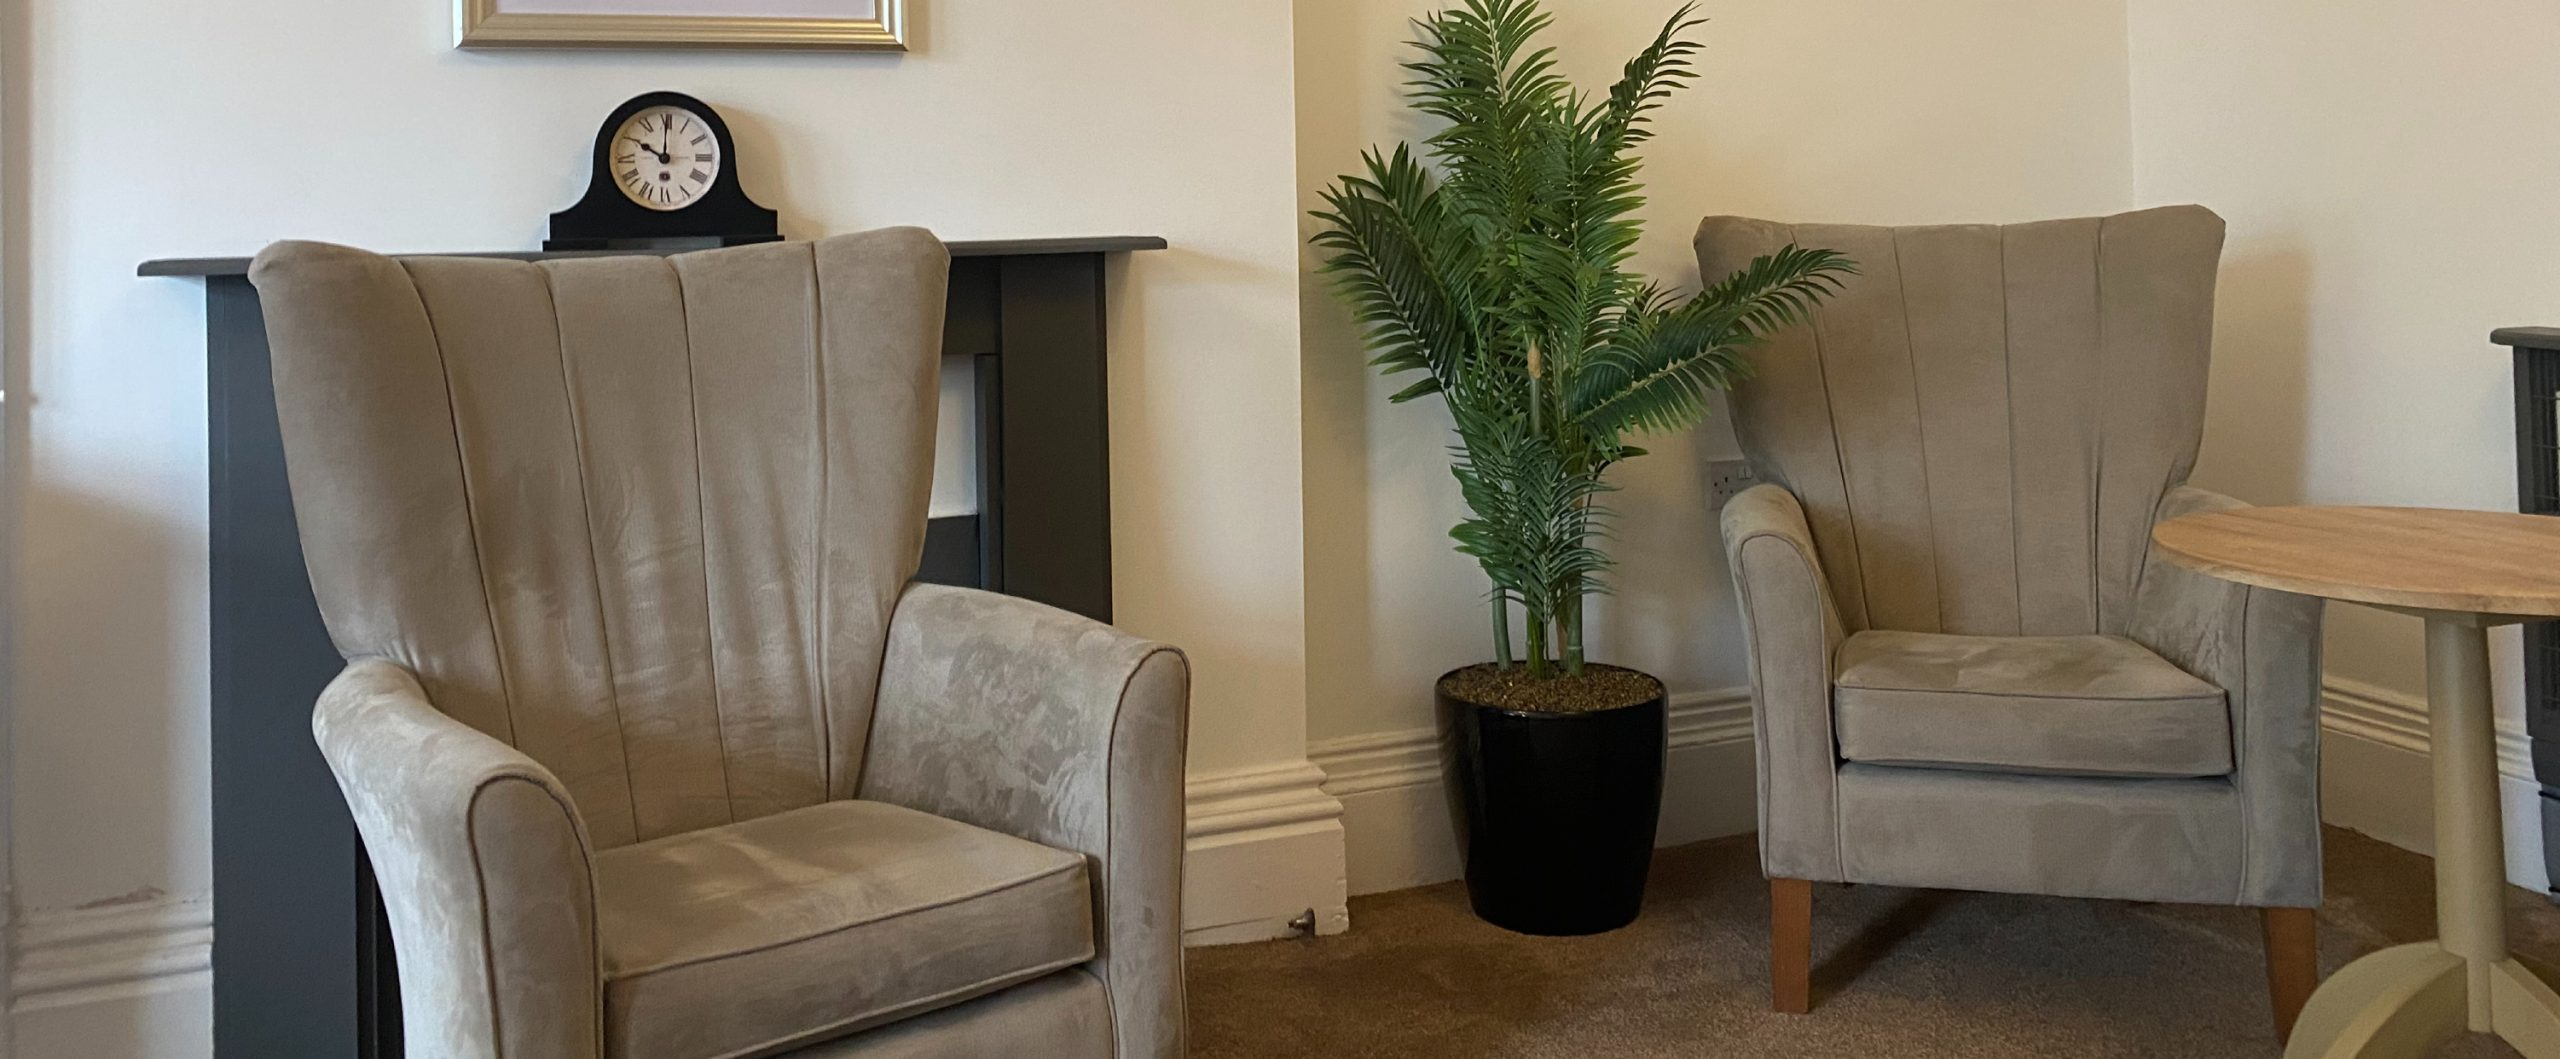 Care Homes in Herefordshire - Holmer nursing home interior